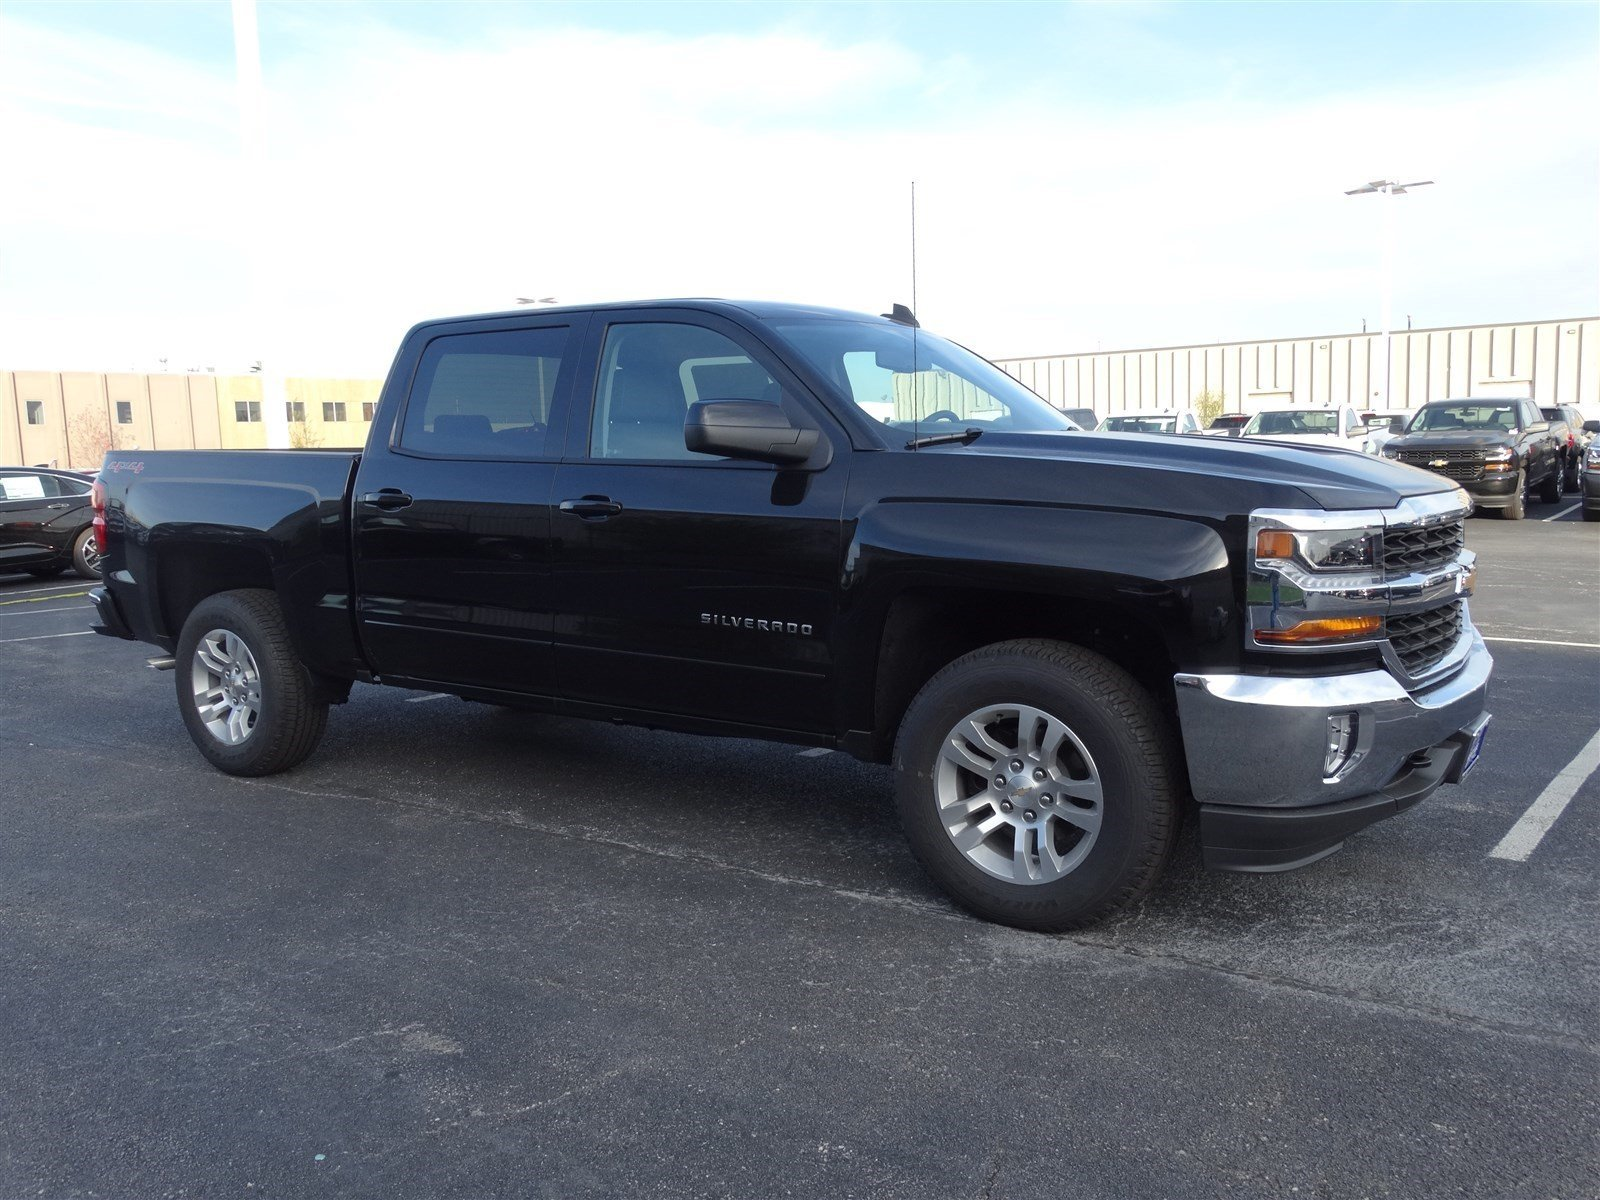 new 2017 chevrolet silverado 1500 lt crew cab pickup in naperville t6013 chevrolet of naperville. Black Bedroom Furniture Sets. Home Design Ideas